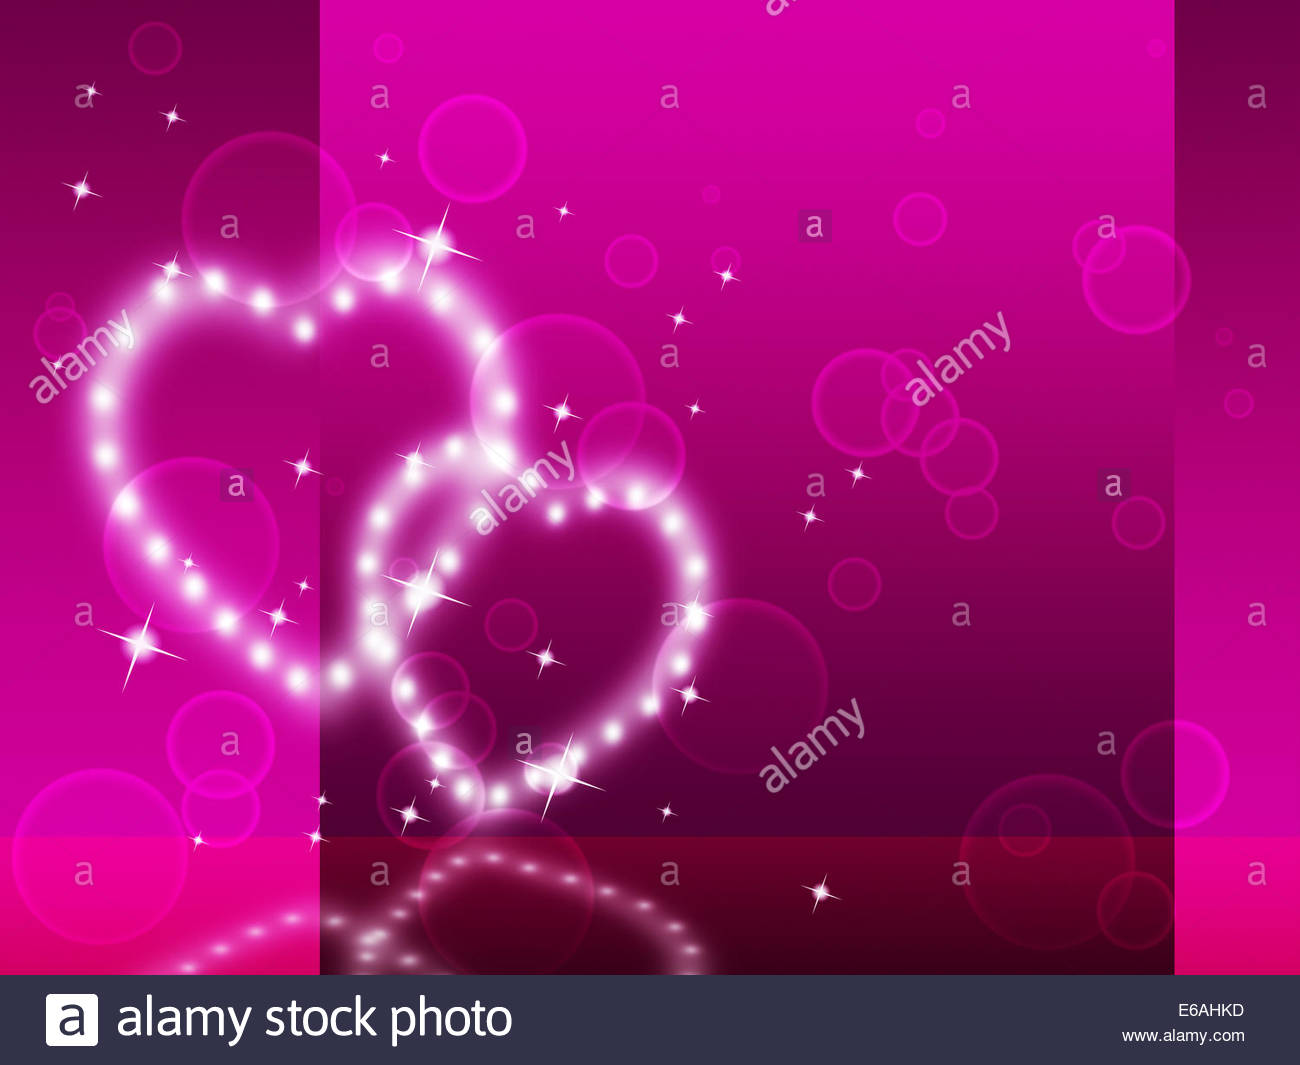 Pink Hearts Background Meaning Affection Desire And Glittering 1300x1065